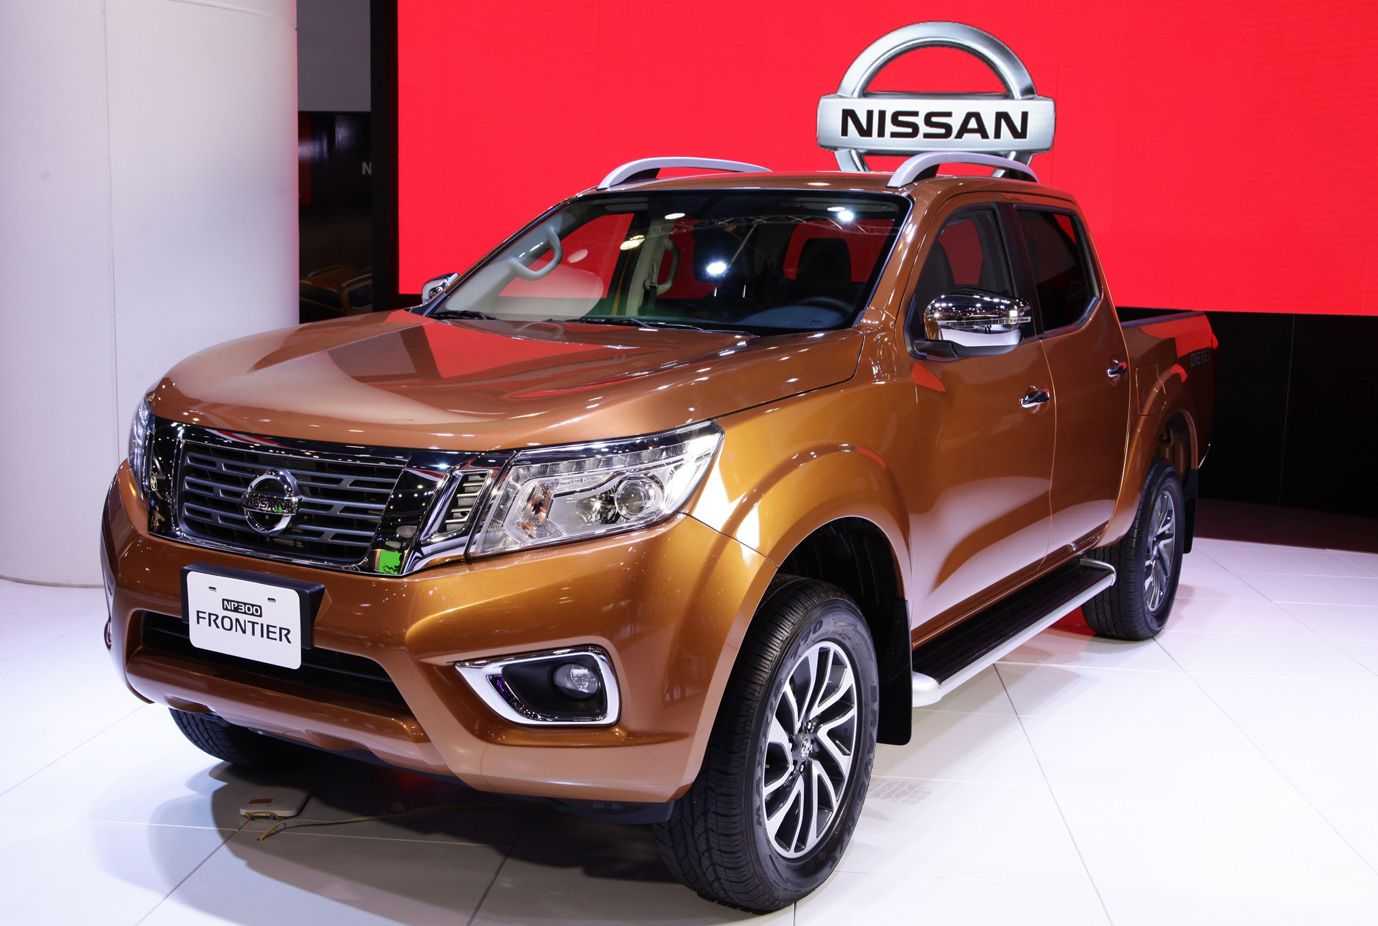 Next Generation Nissan Frontier Unveiled In Buenos Aires In 2020 Nissan Frontier Nissan Nissan Xterra